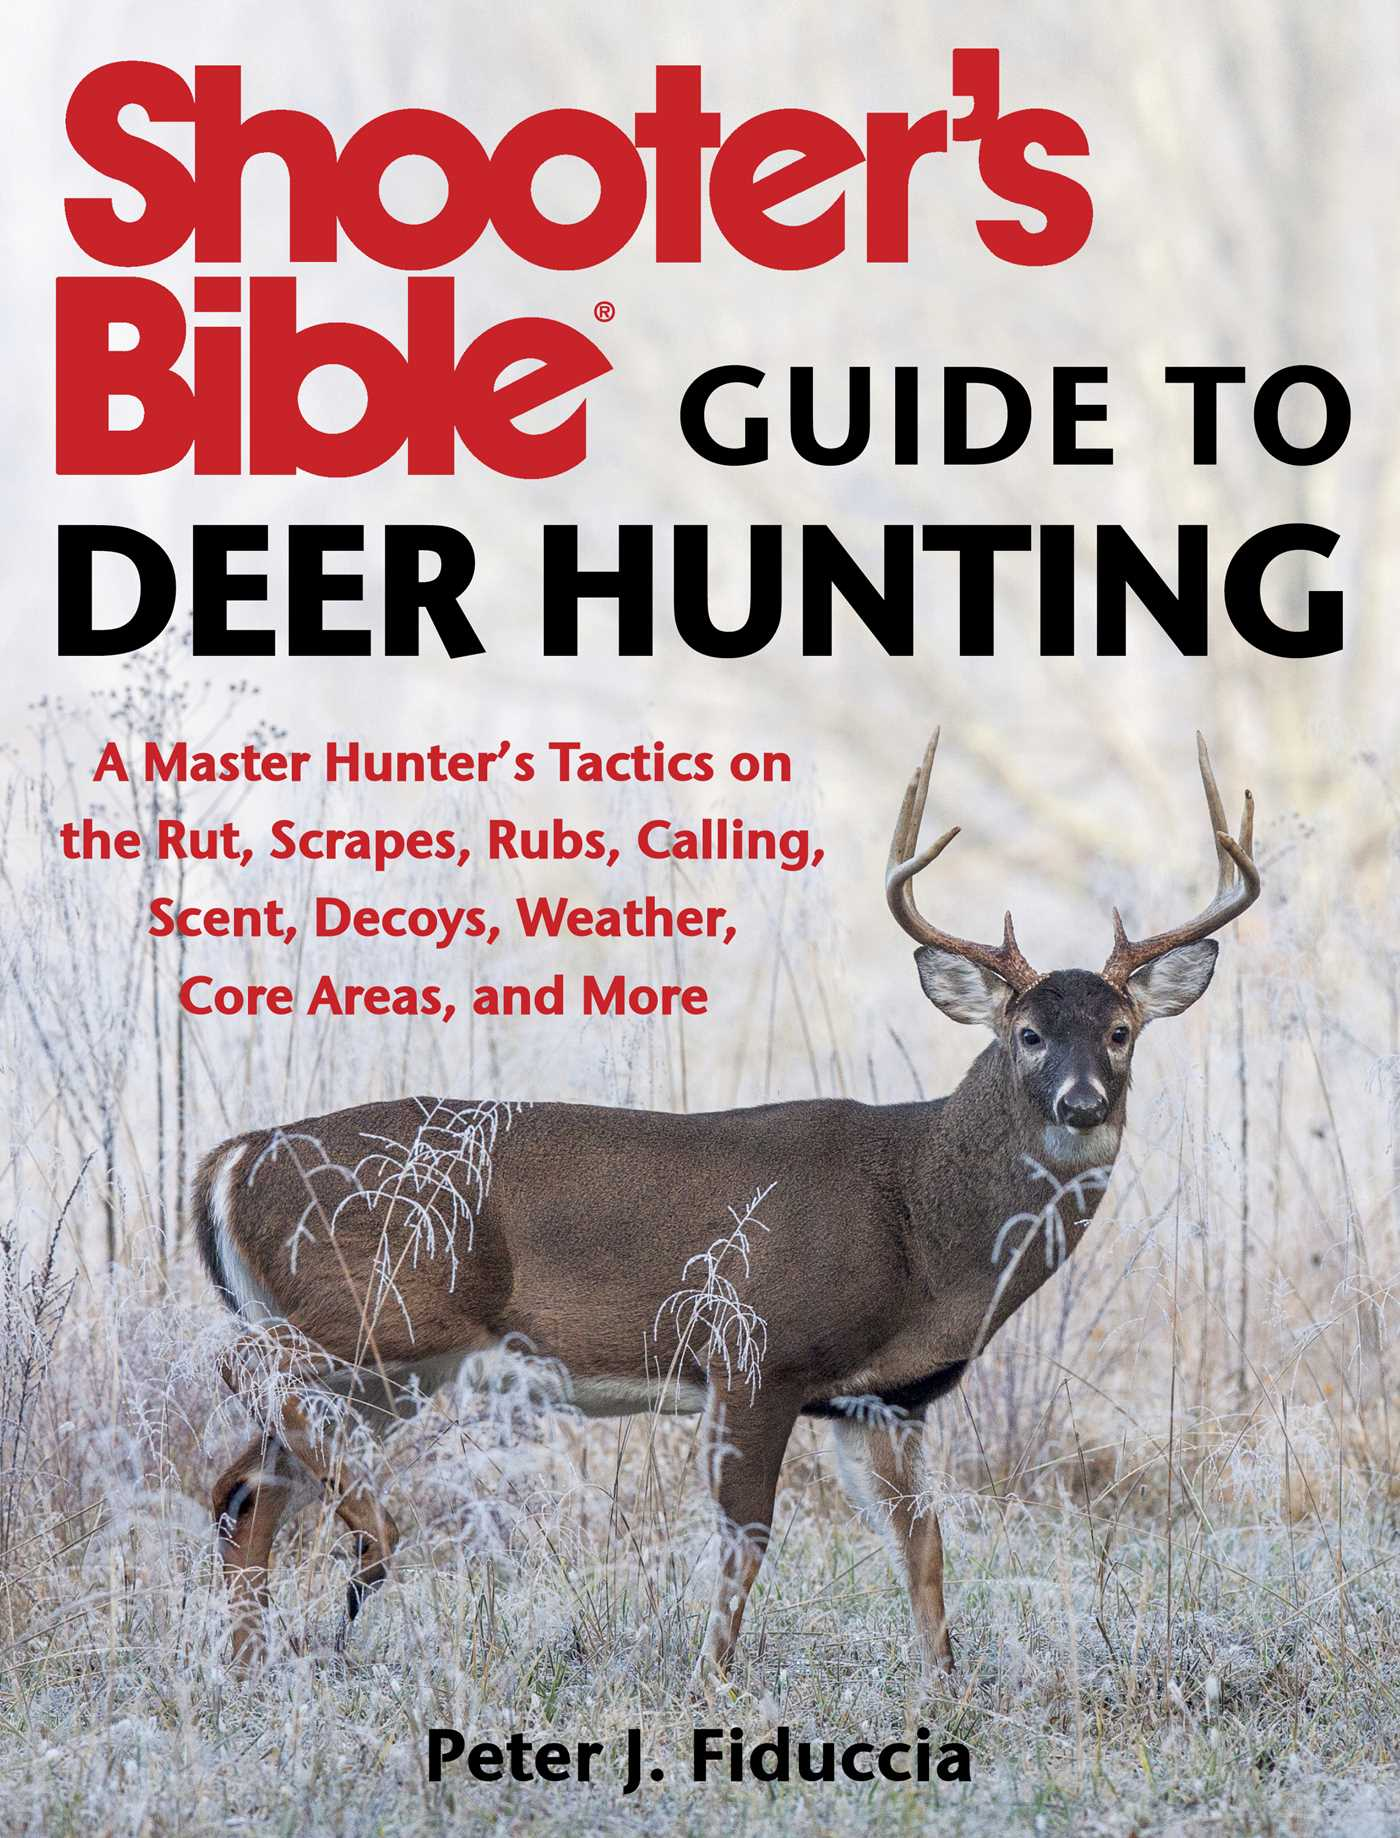 Shooters bible guide to deer hunting 9781510727533 hr